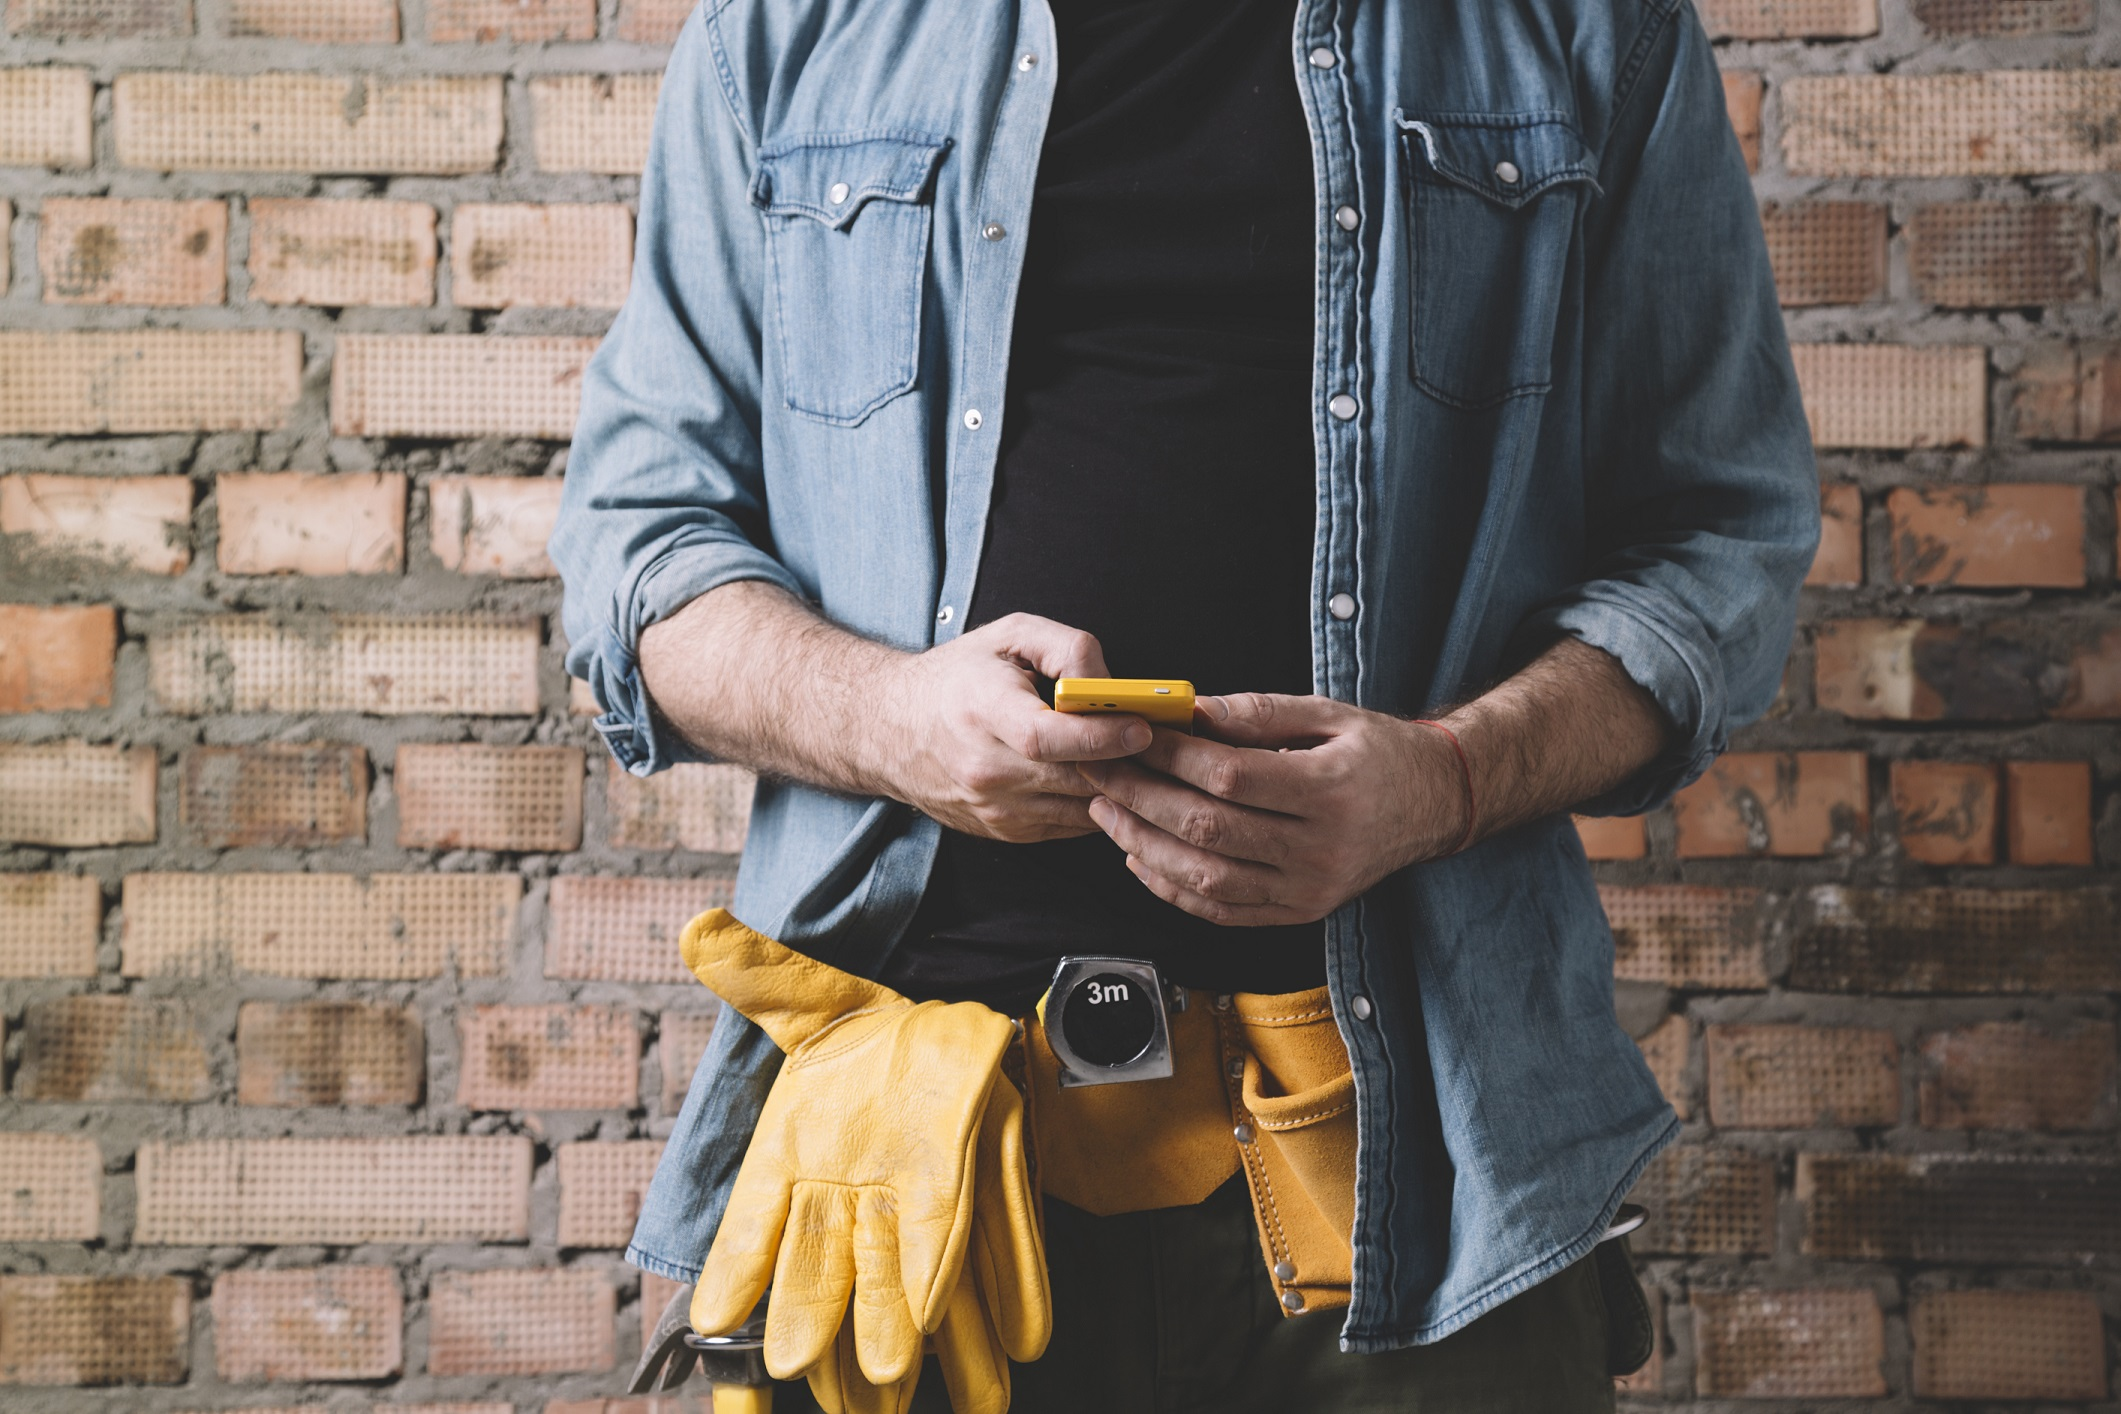 Construction worker texting on phone